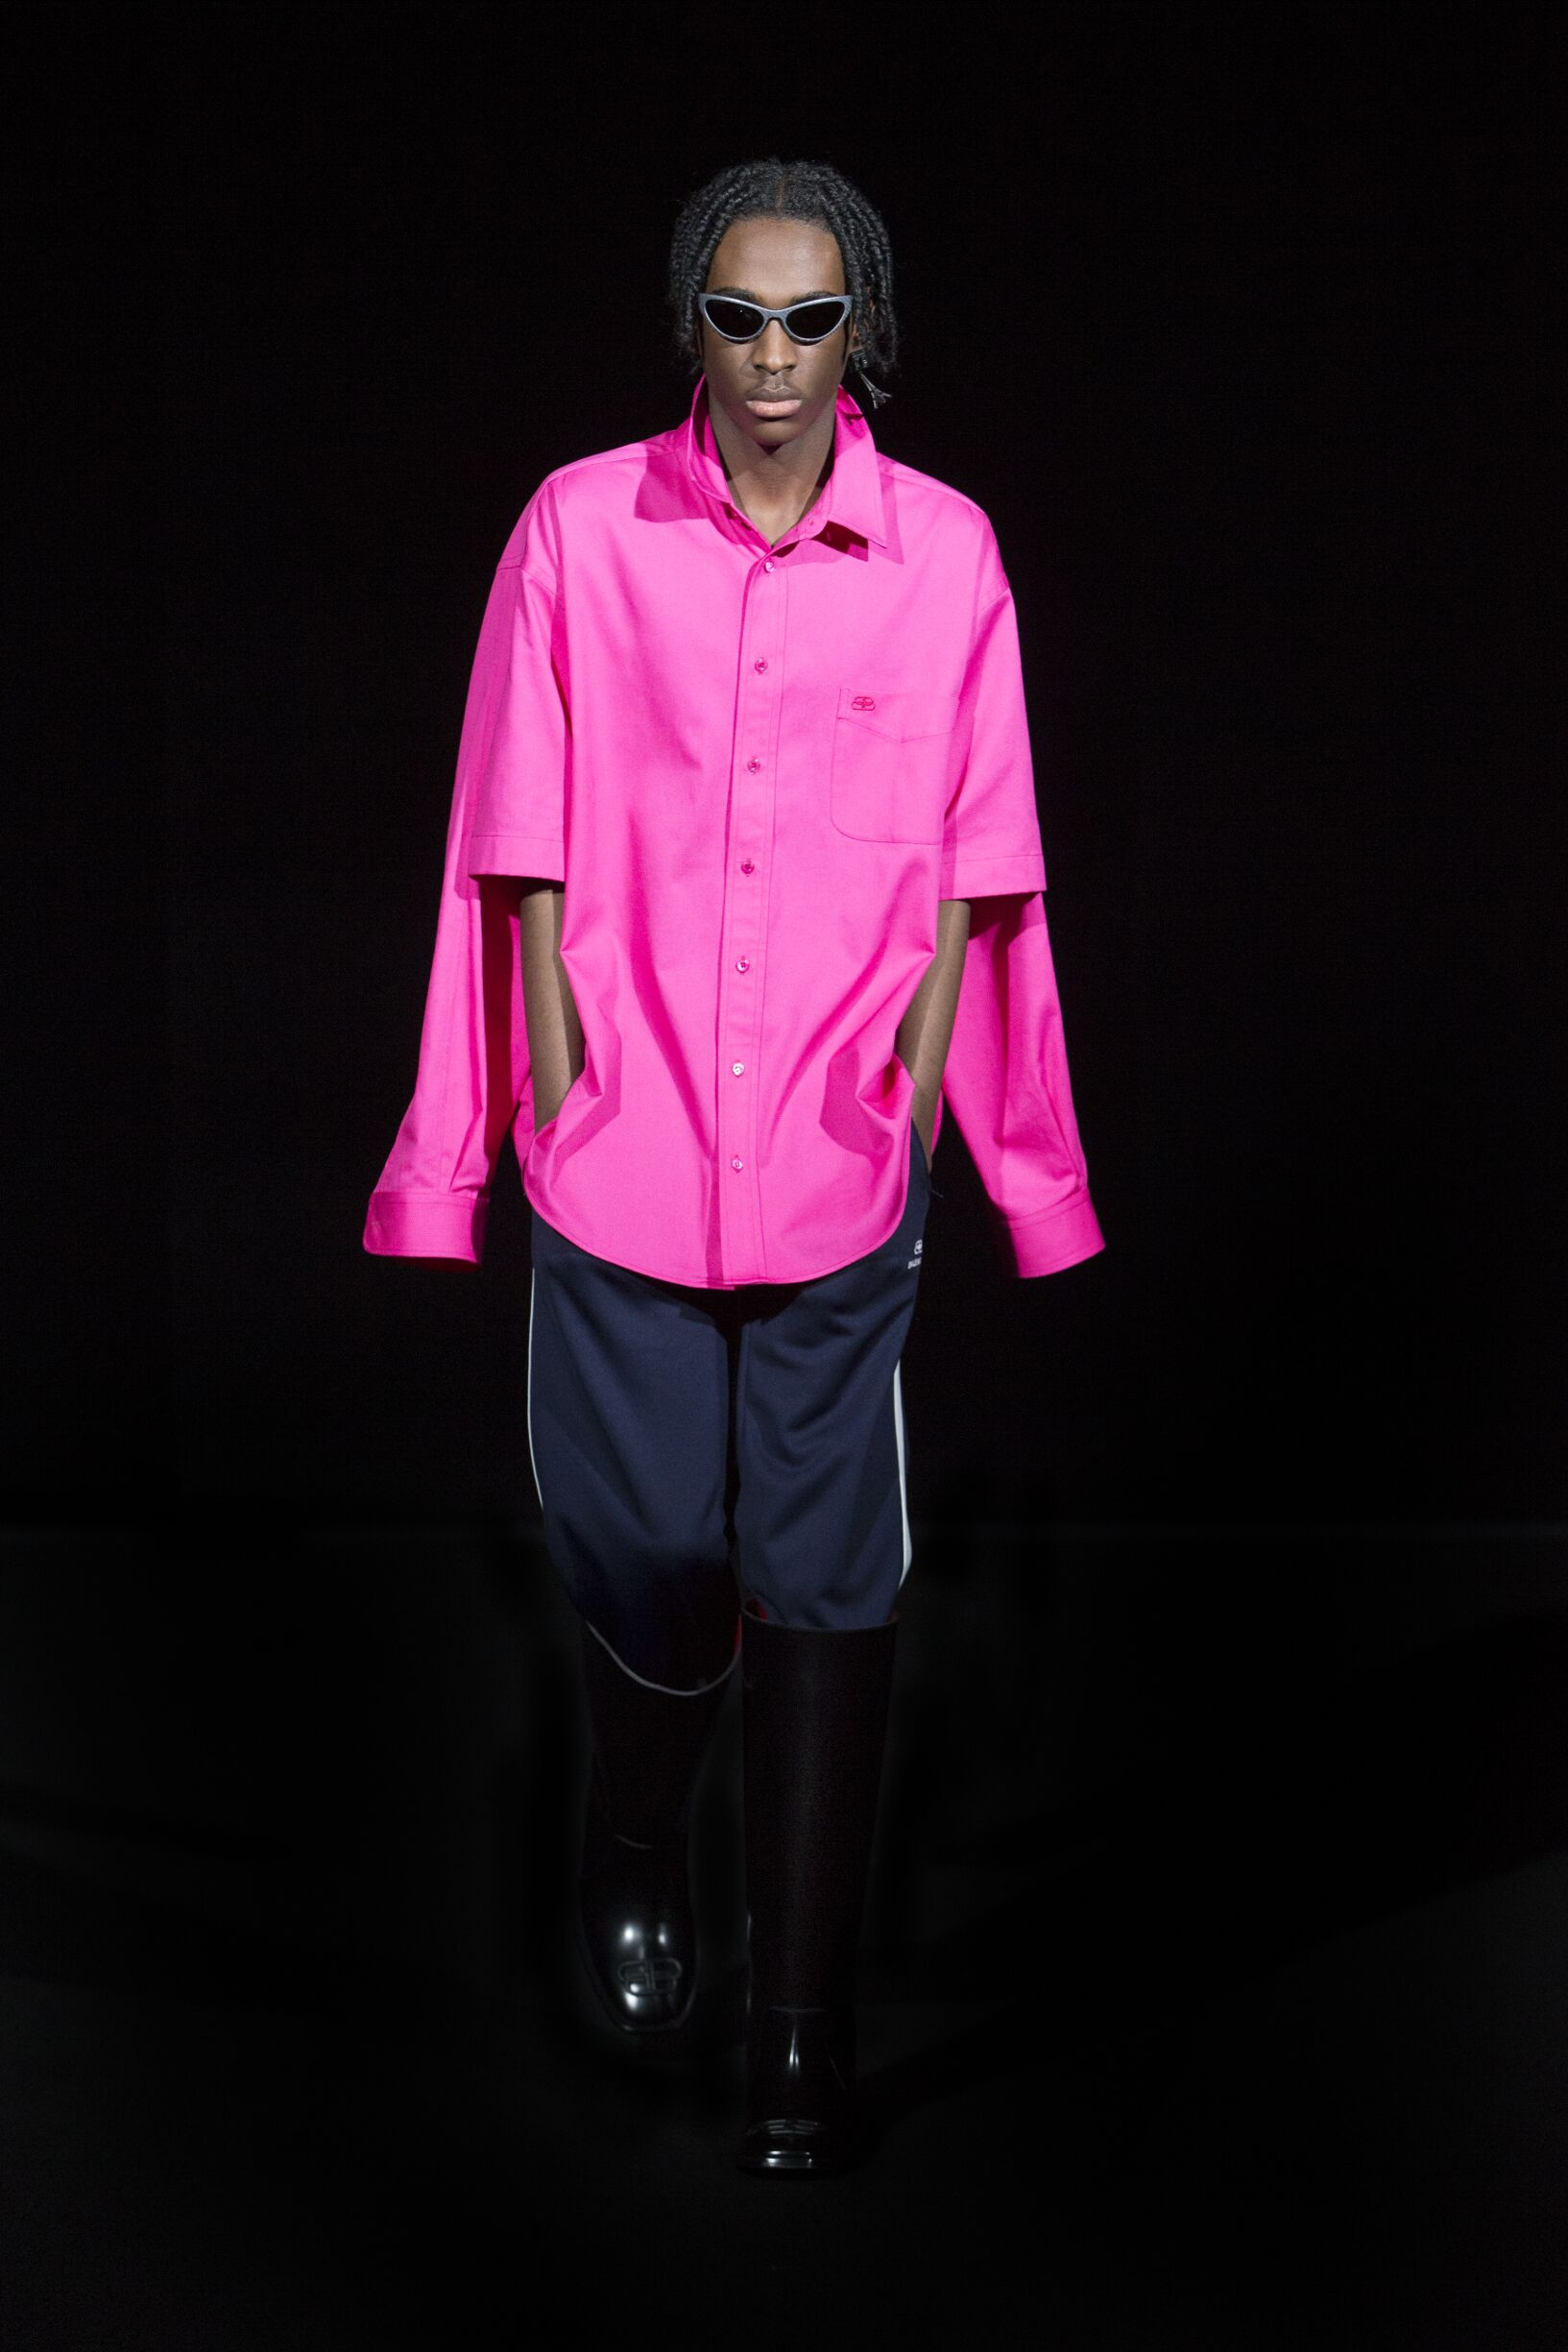 Balenciaga Man 2019 Paris Trends